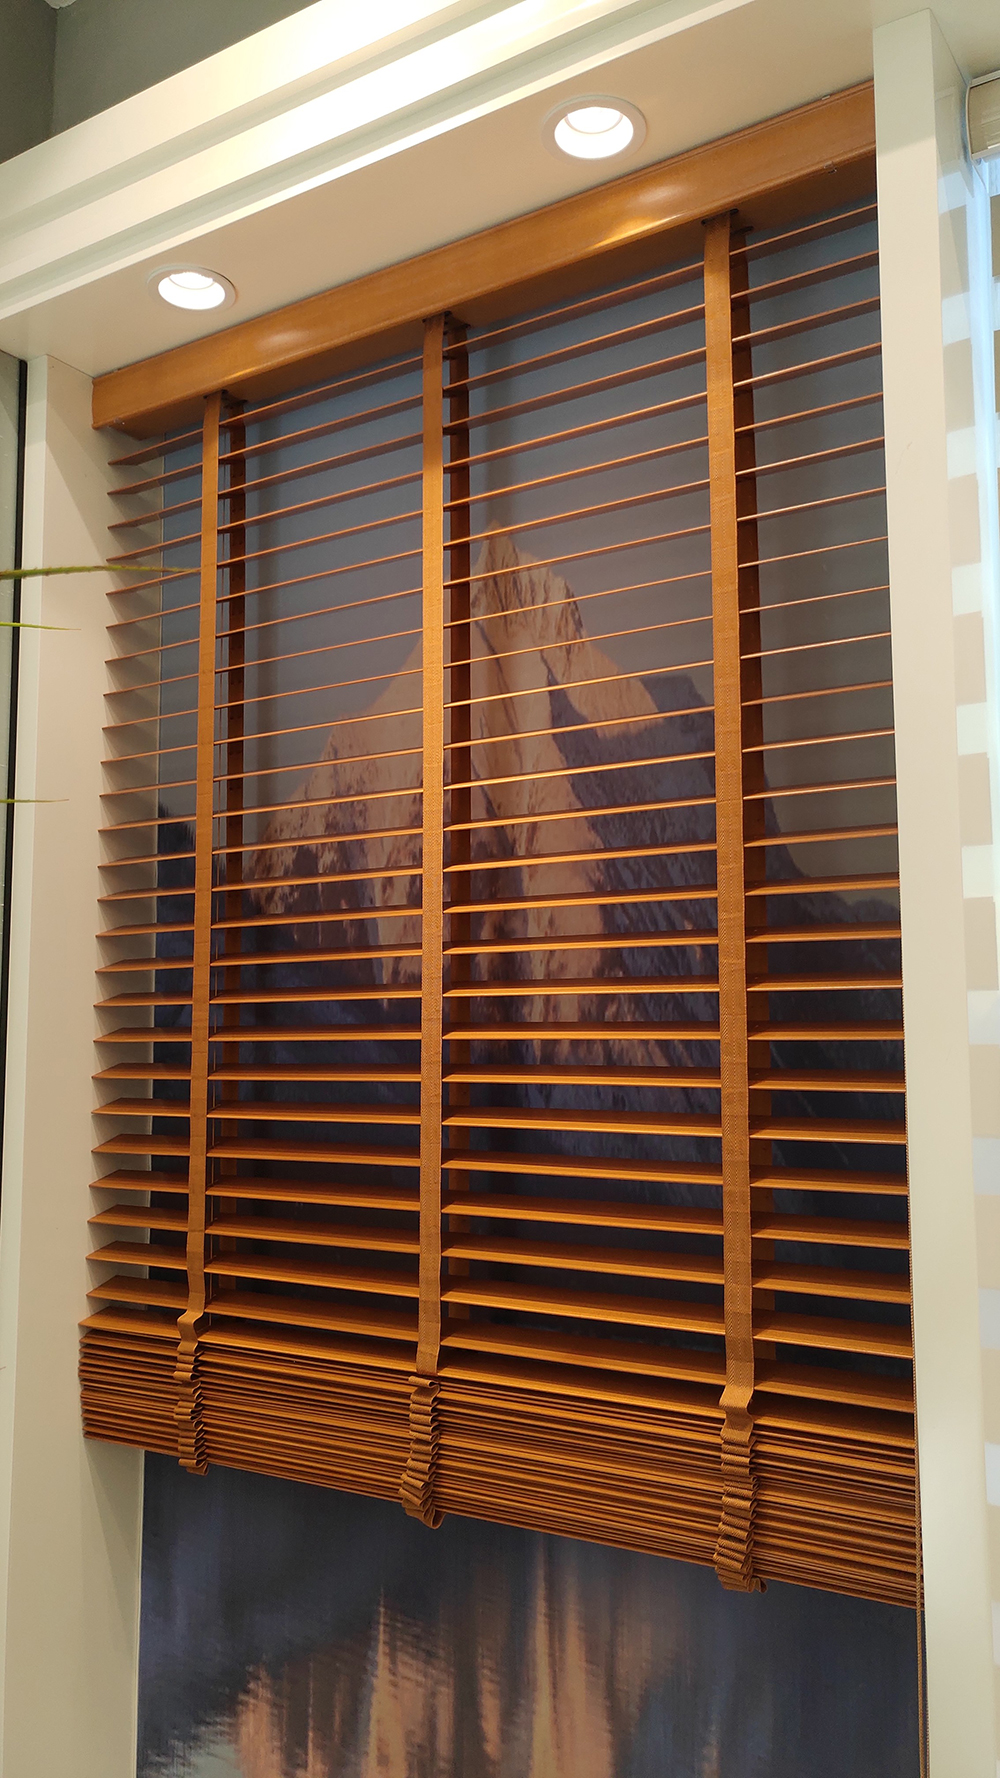 Wooden Door Blinds Curtain Times Manual System Natural Bass Wooden Venetian Window Blinds With Cord String Wooden Door Beads Buy Manual System Natural Wooden Venetian